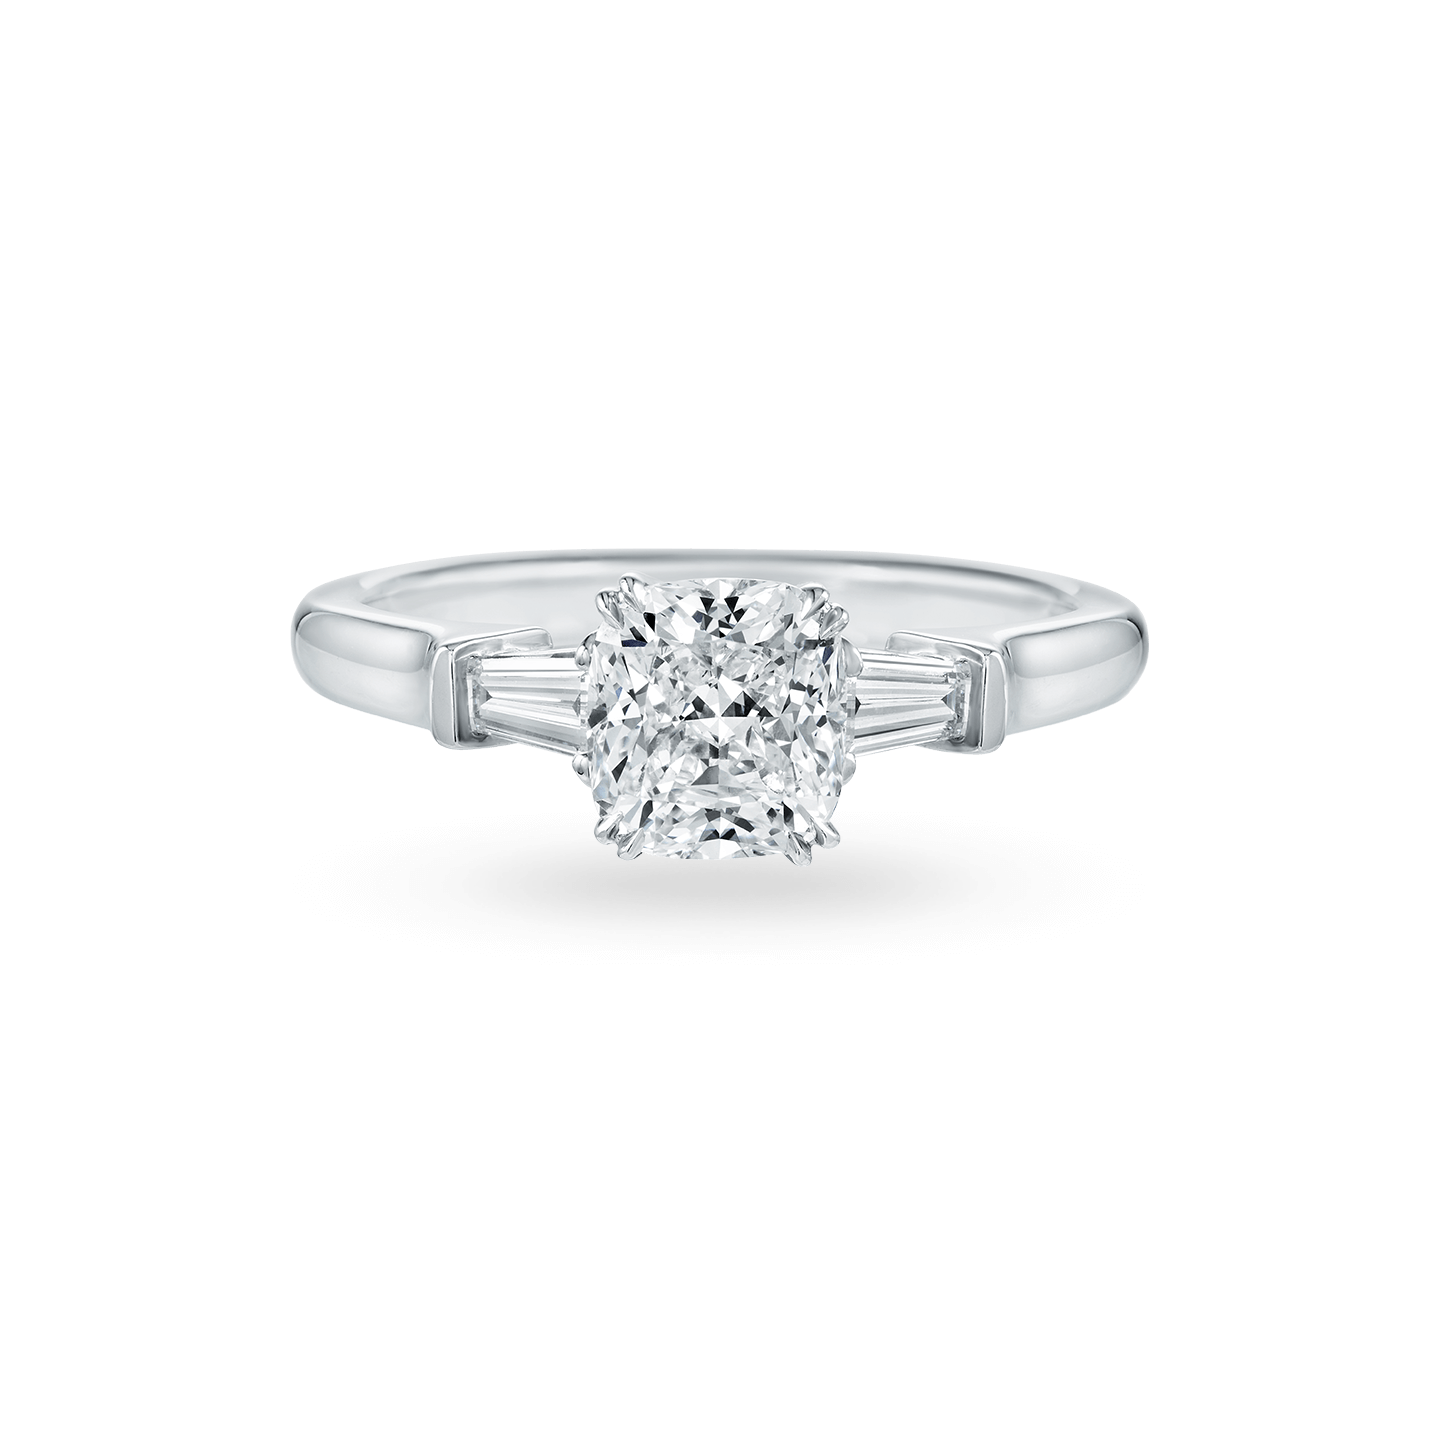 Classic Winston Cushion-Cut Engagement Ring with Tapered Baguette Side Stones, Product Image 1